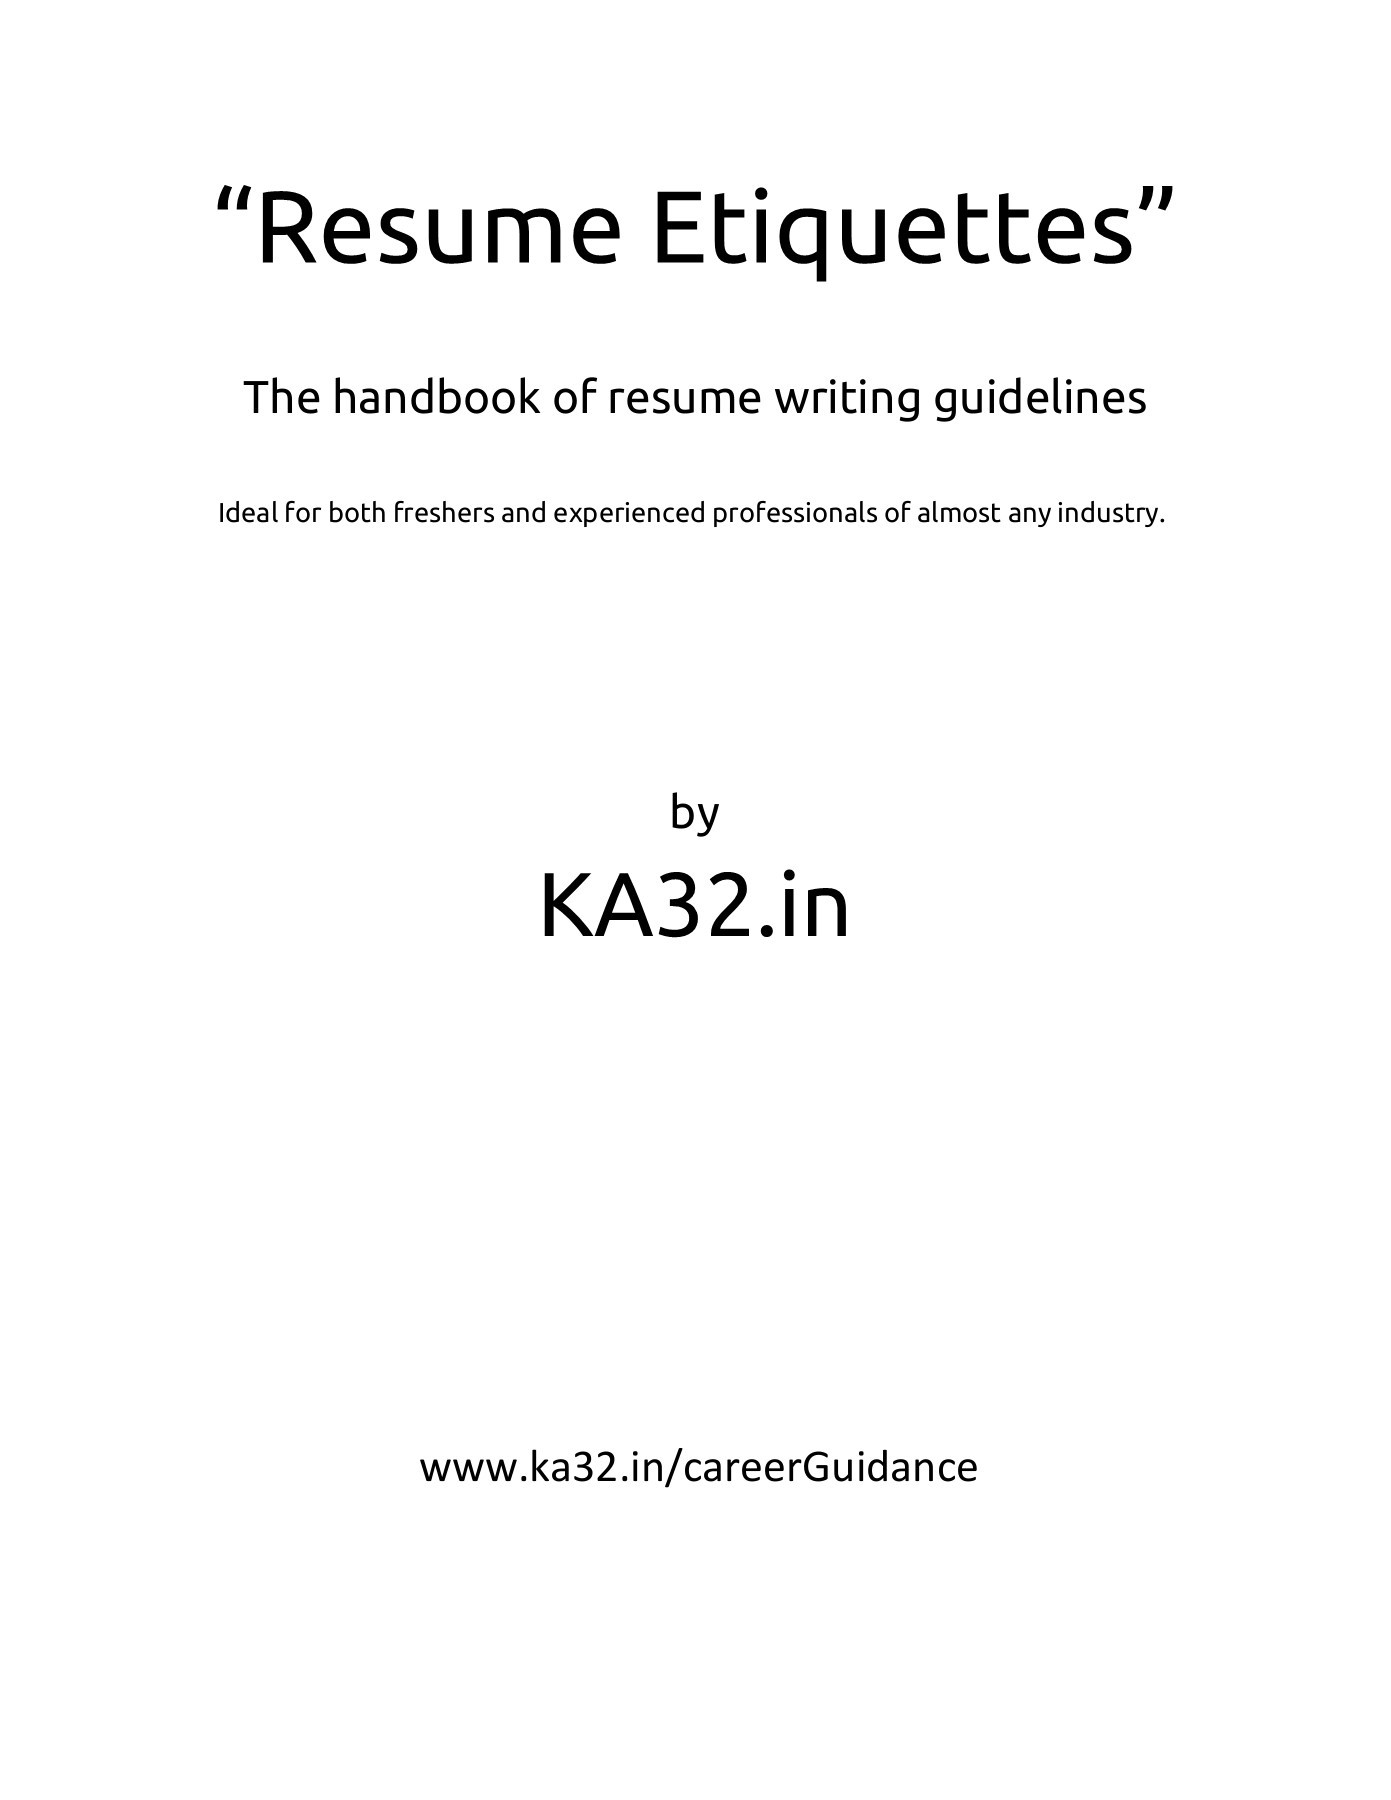 resume writing guidelines by ka32 in fliphtml5